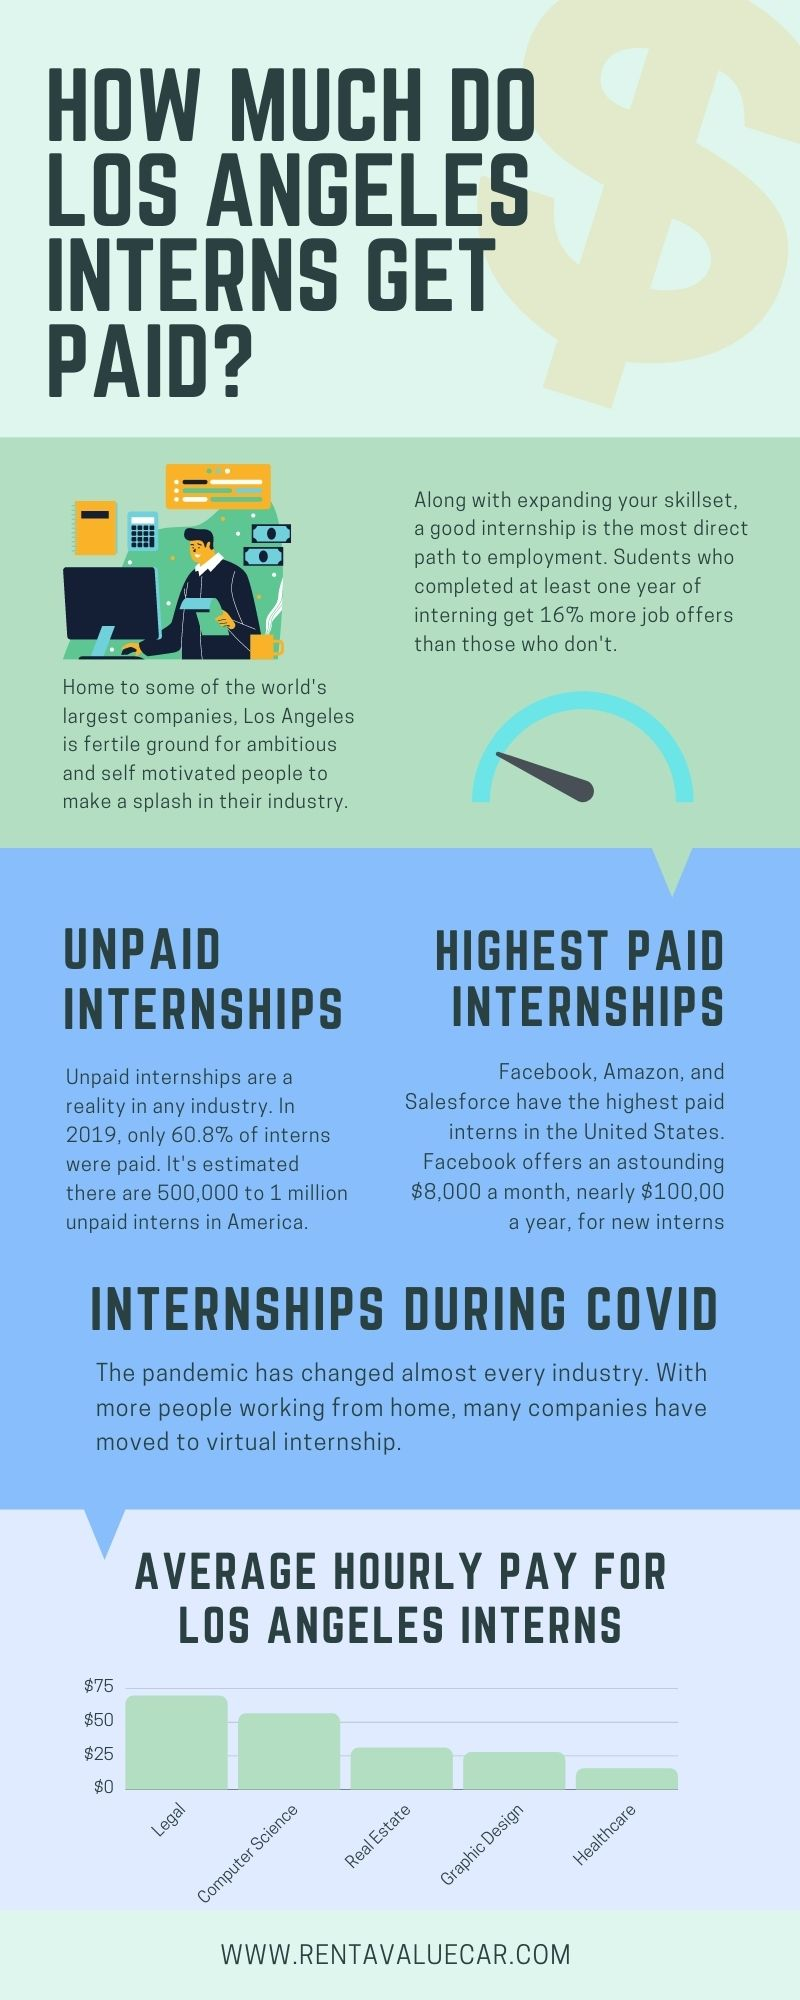 How much do los angeles interns get paid infographic